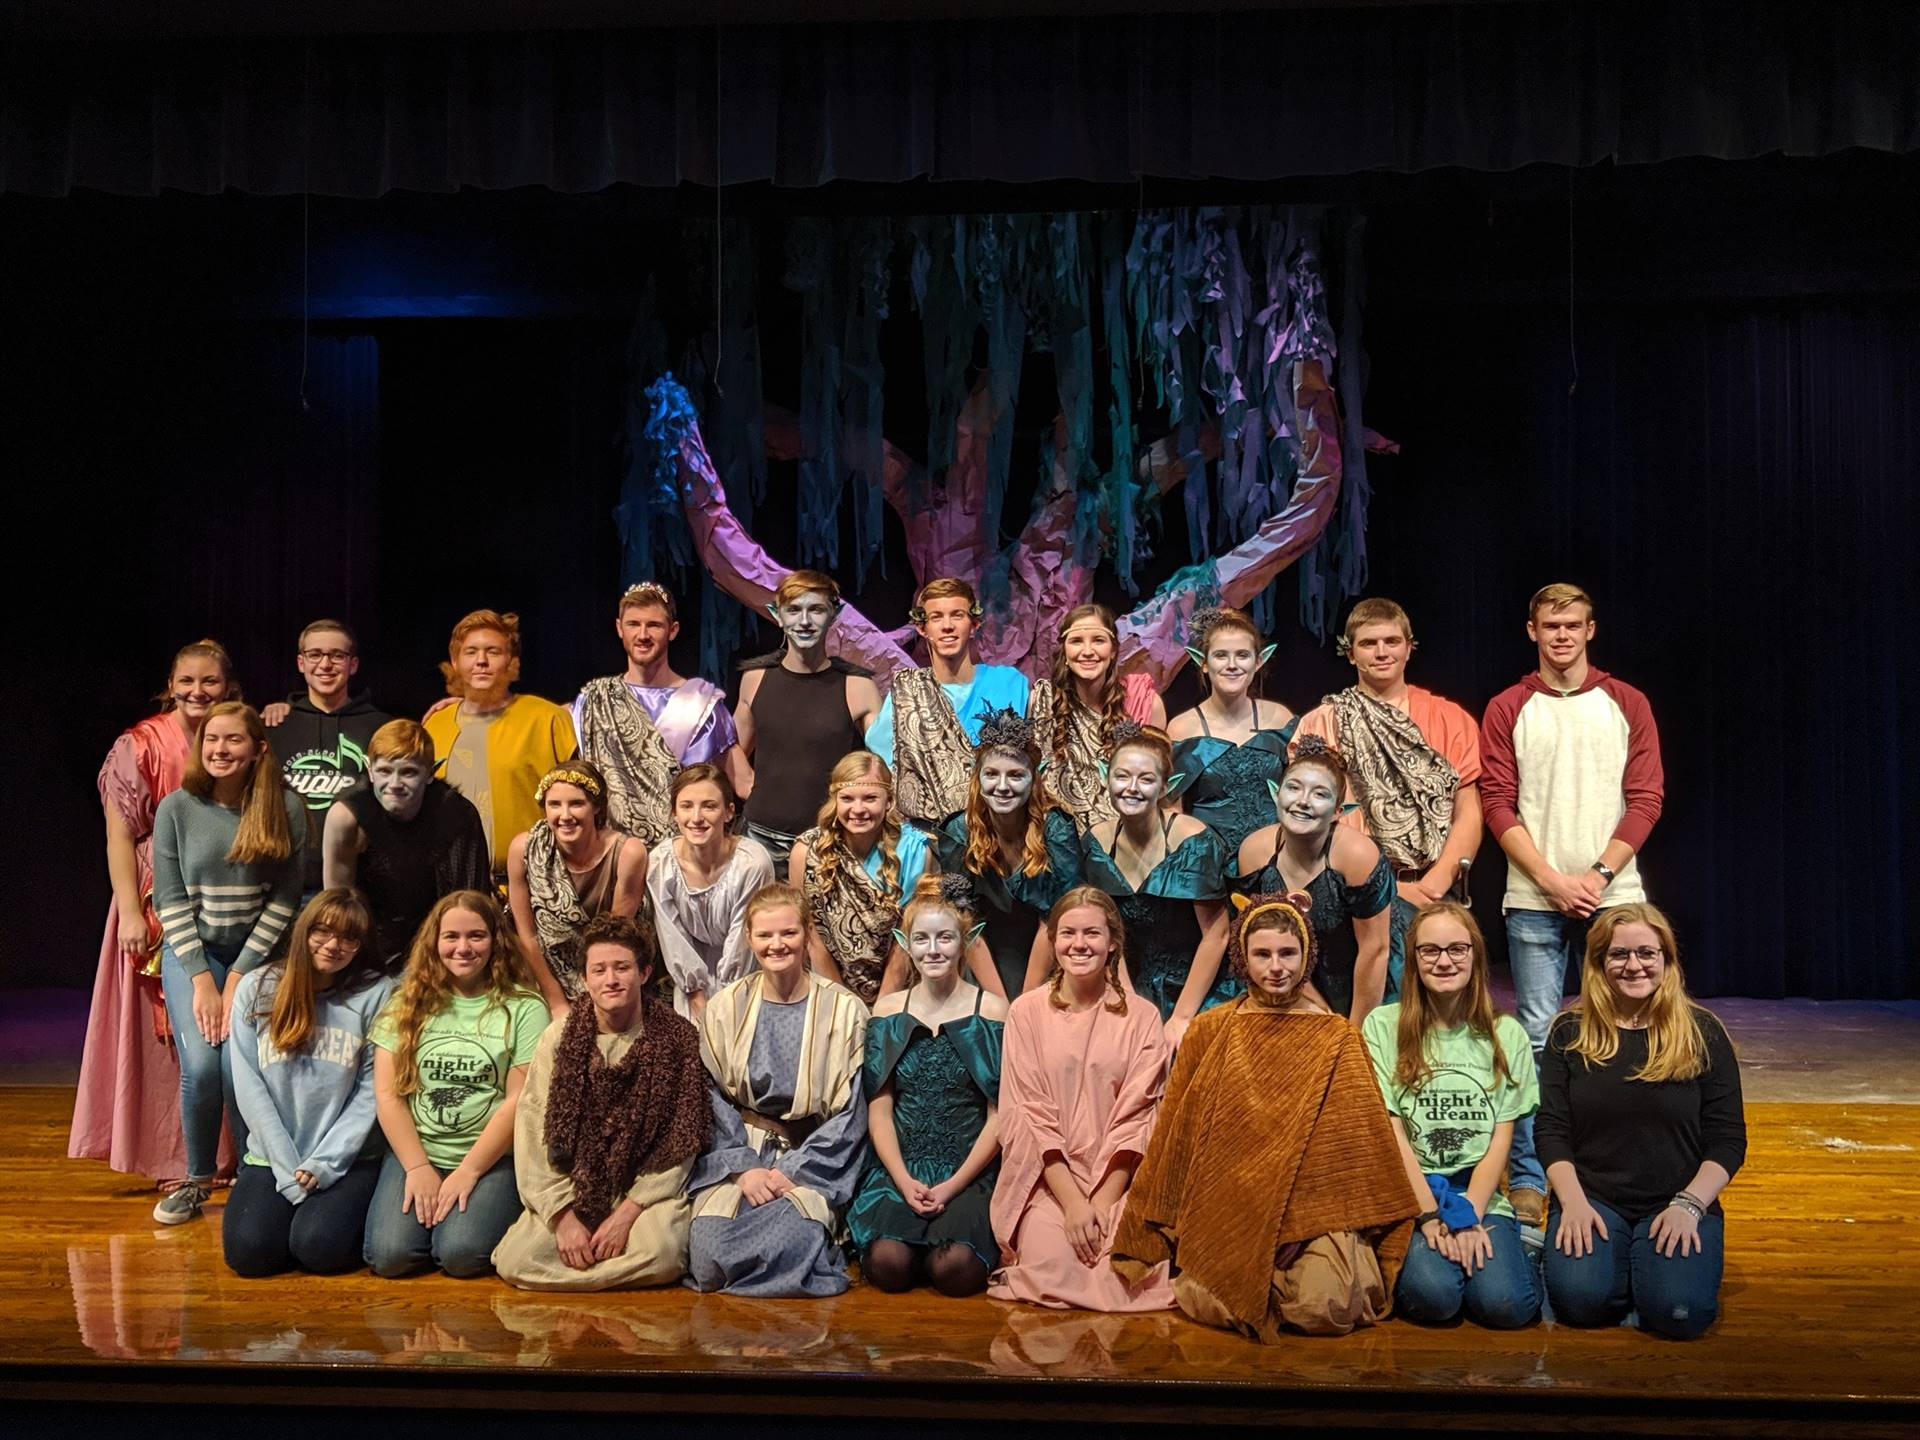 A Midsummer Night's Dream Cast and Crew